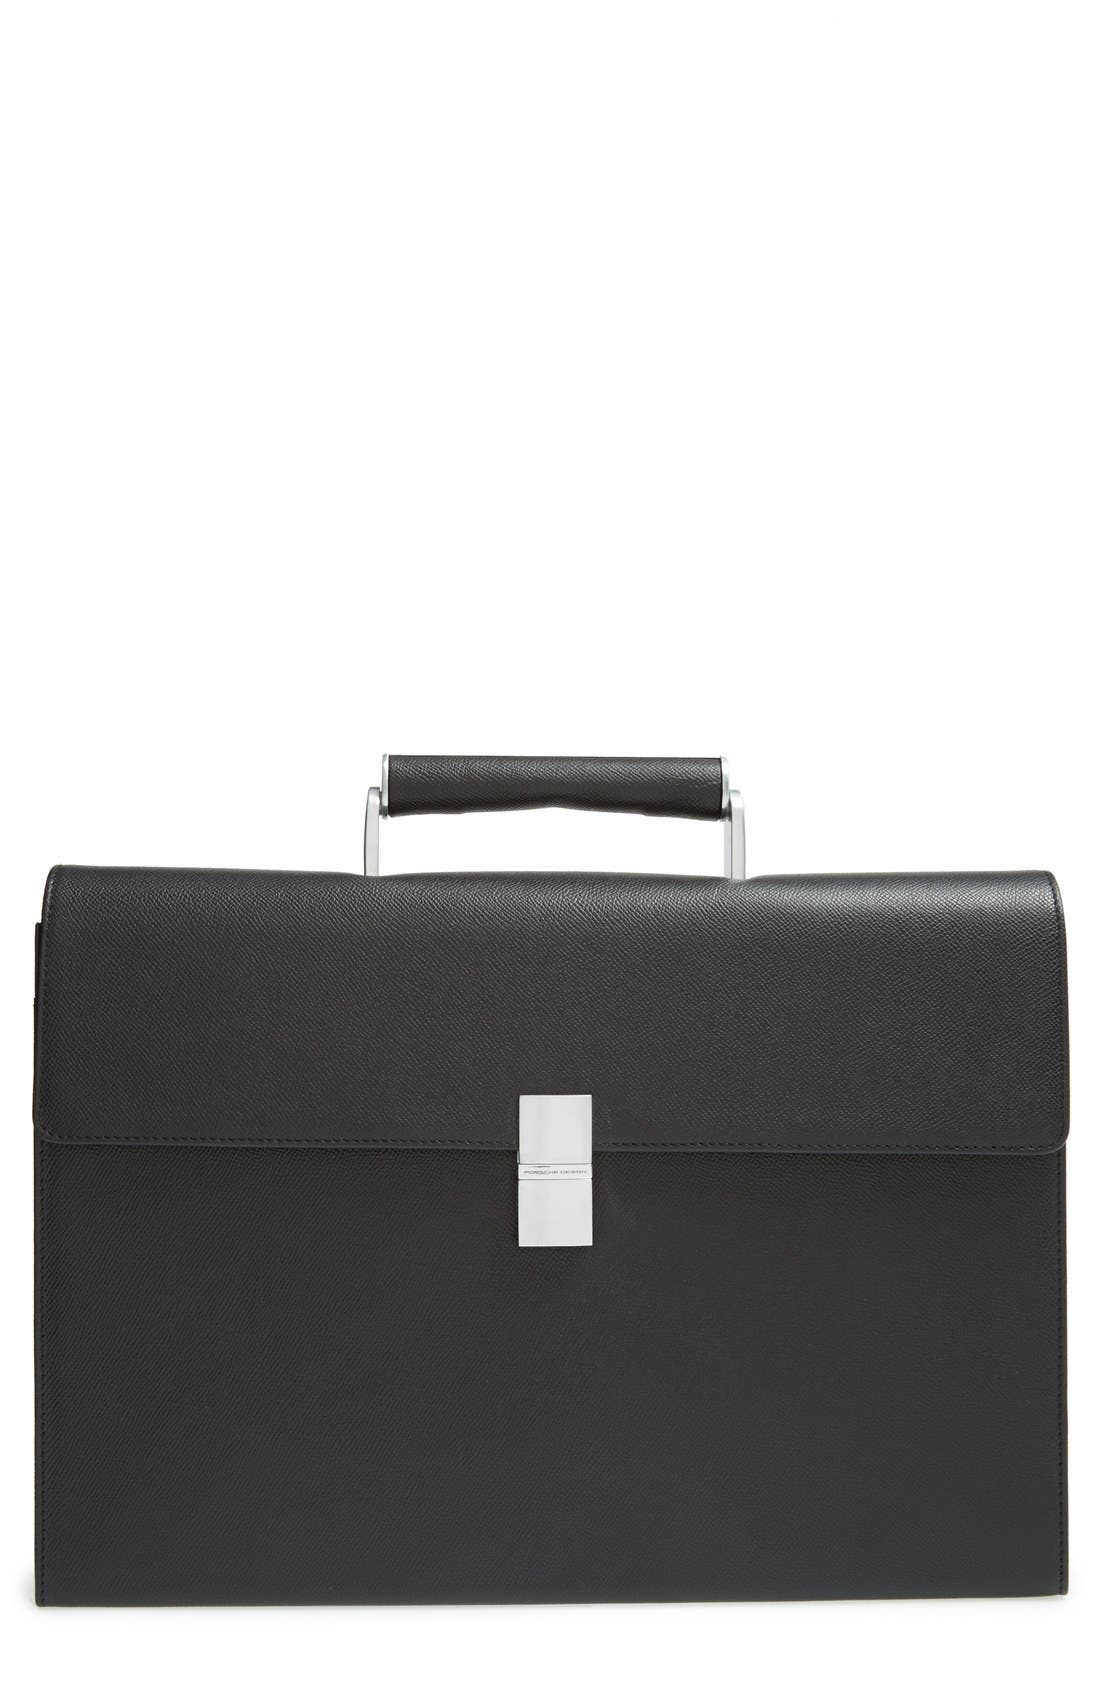 French Classic 3.0 Leather Briefcase,                         Main,                         color, Black